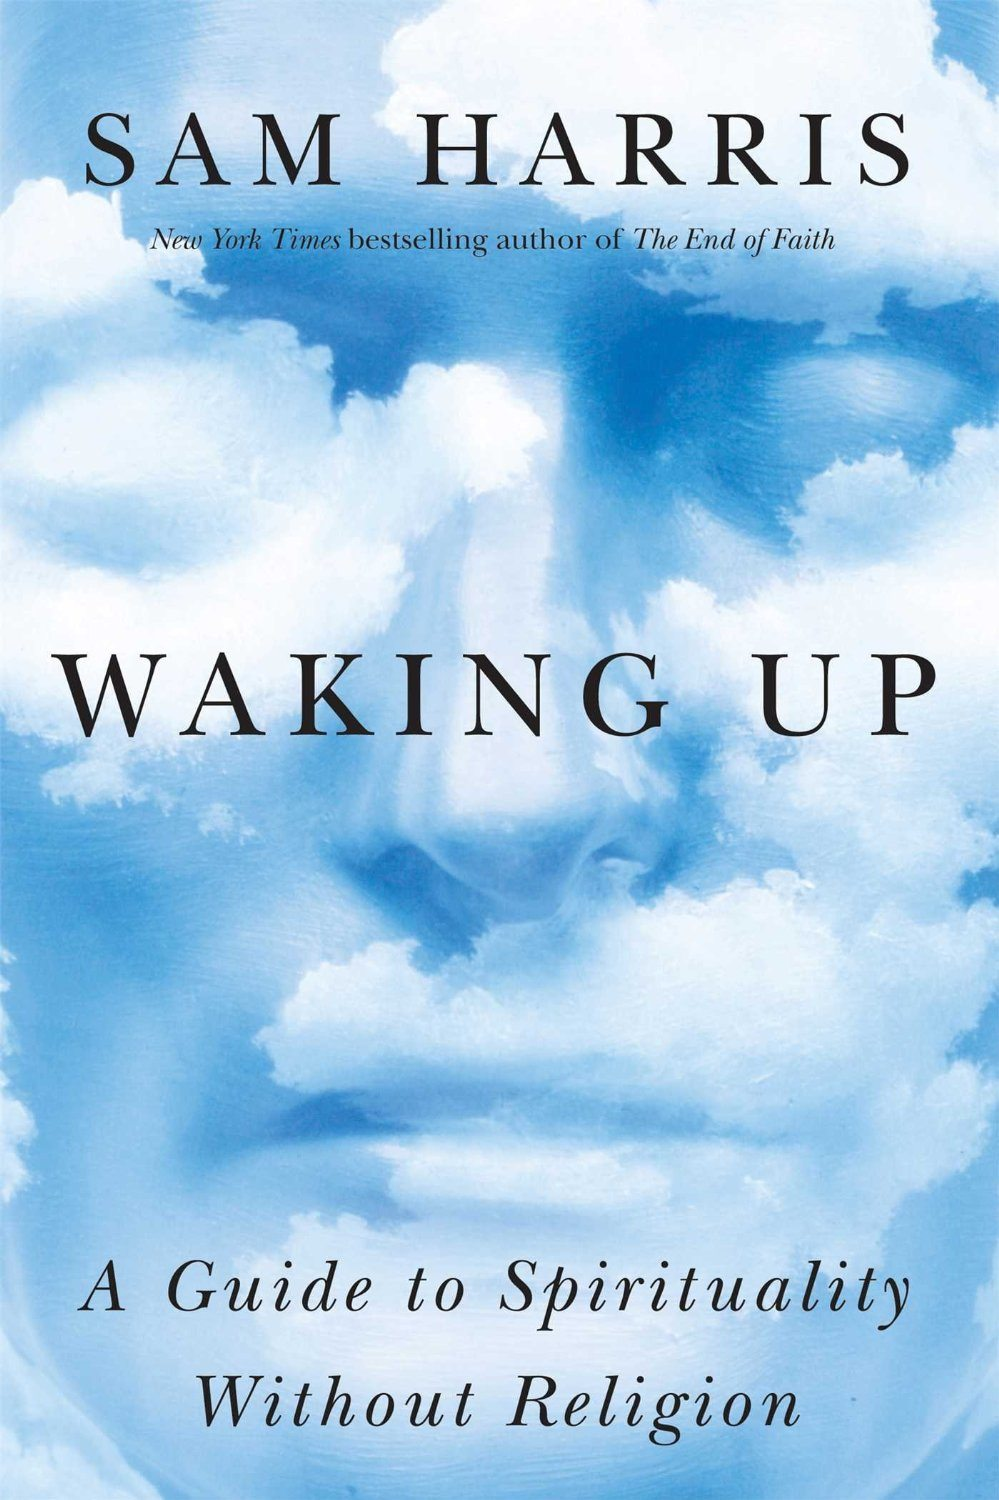 Books on Spirituality - Waking Up by Sam Harris